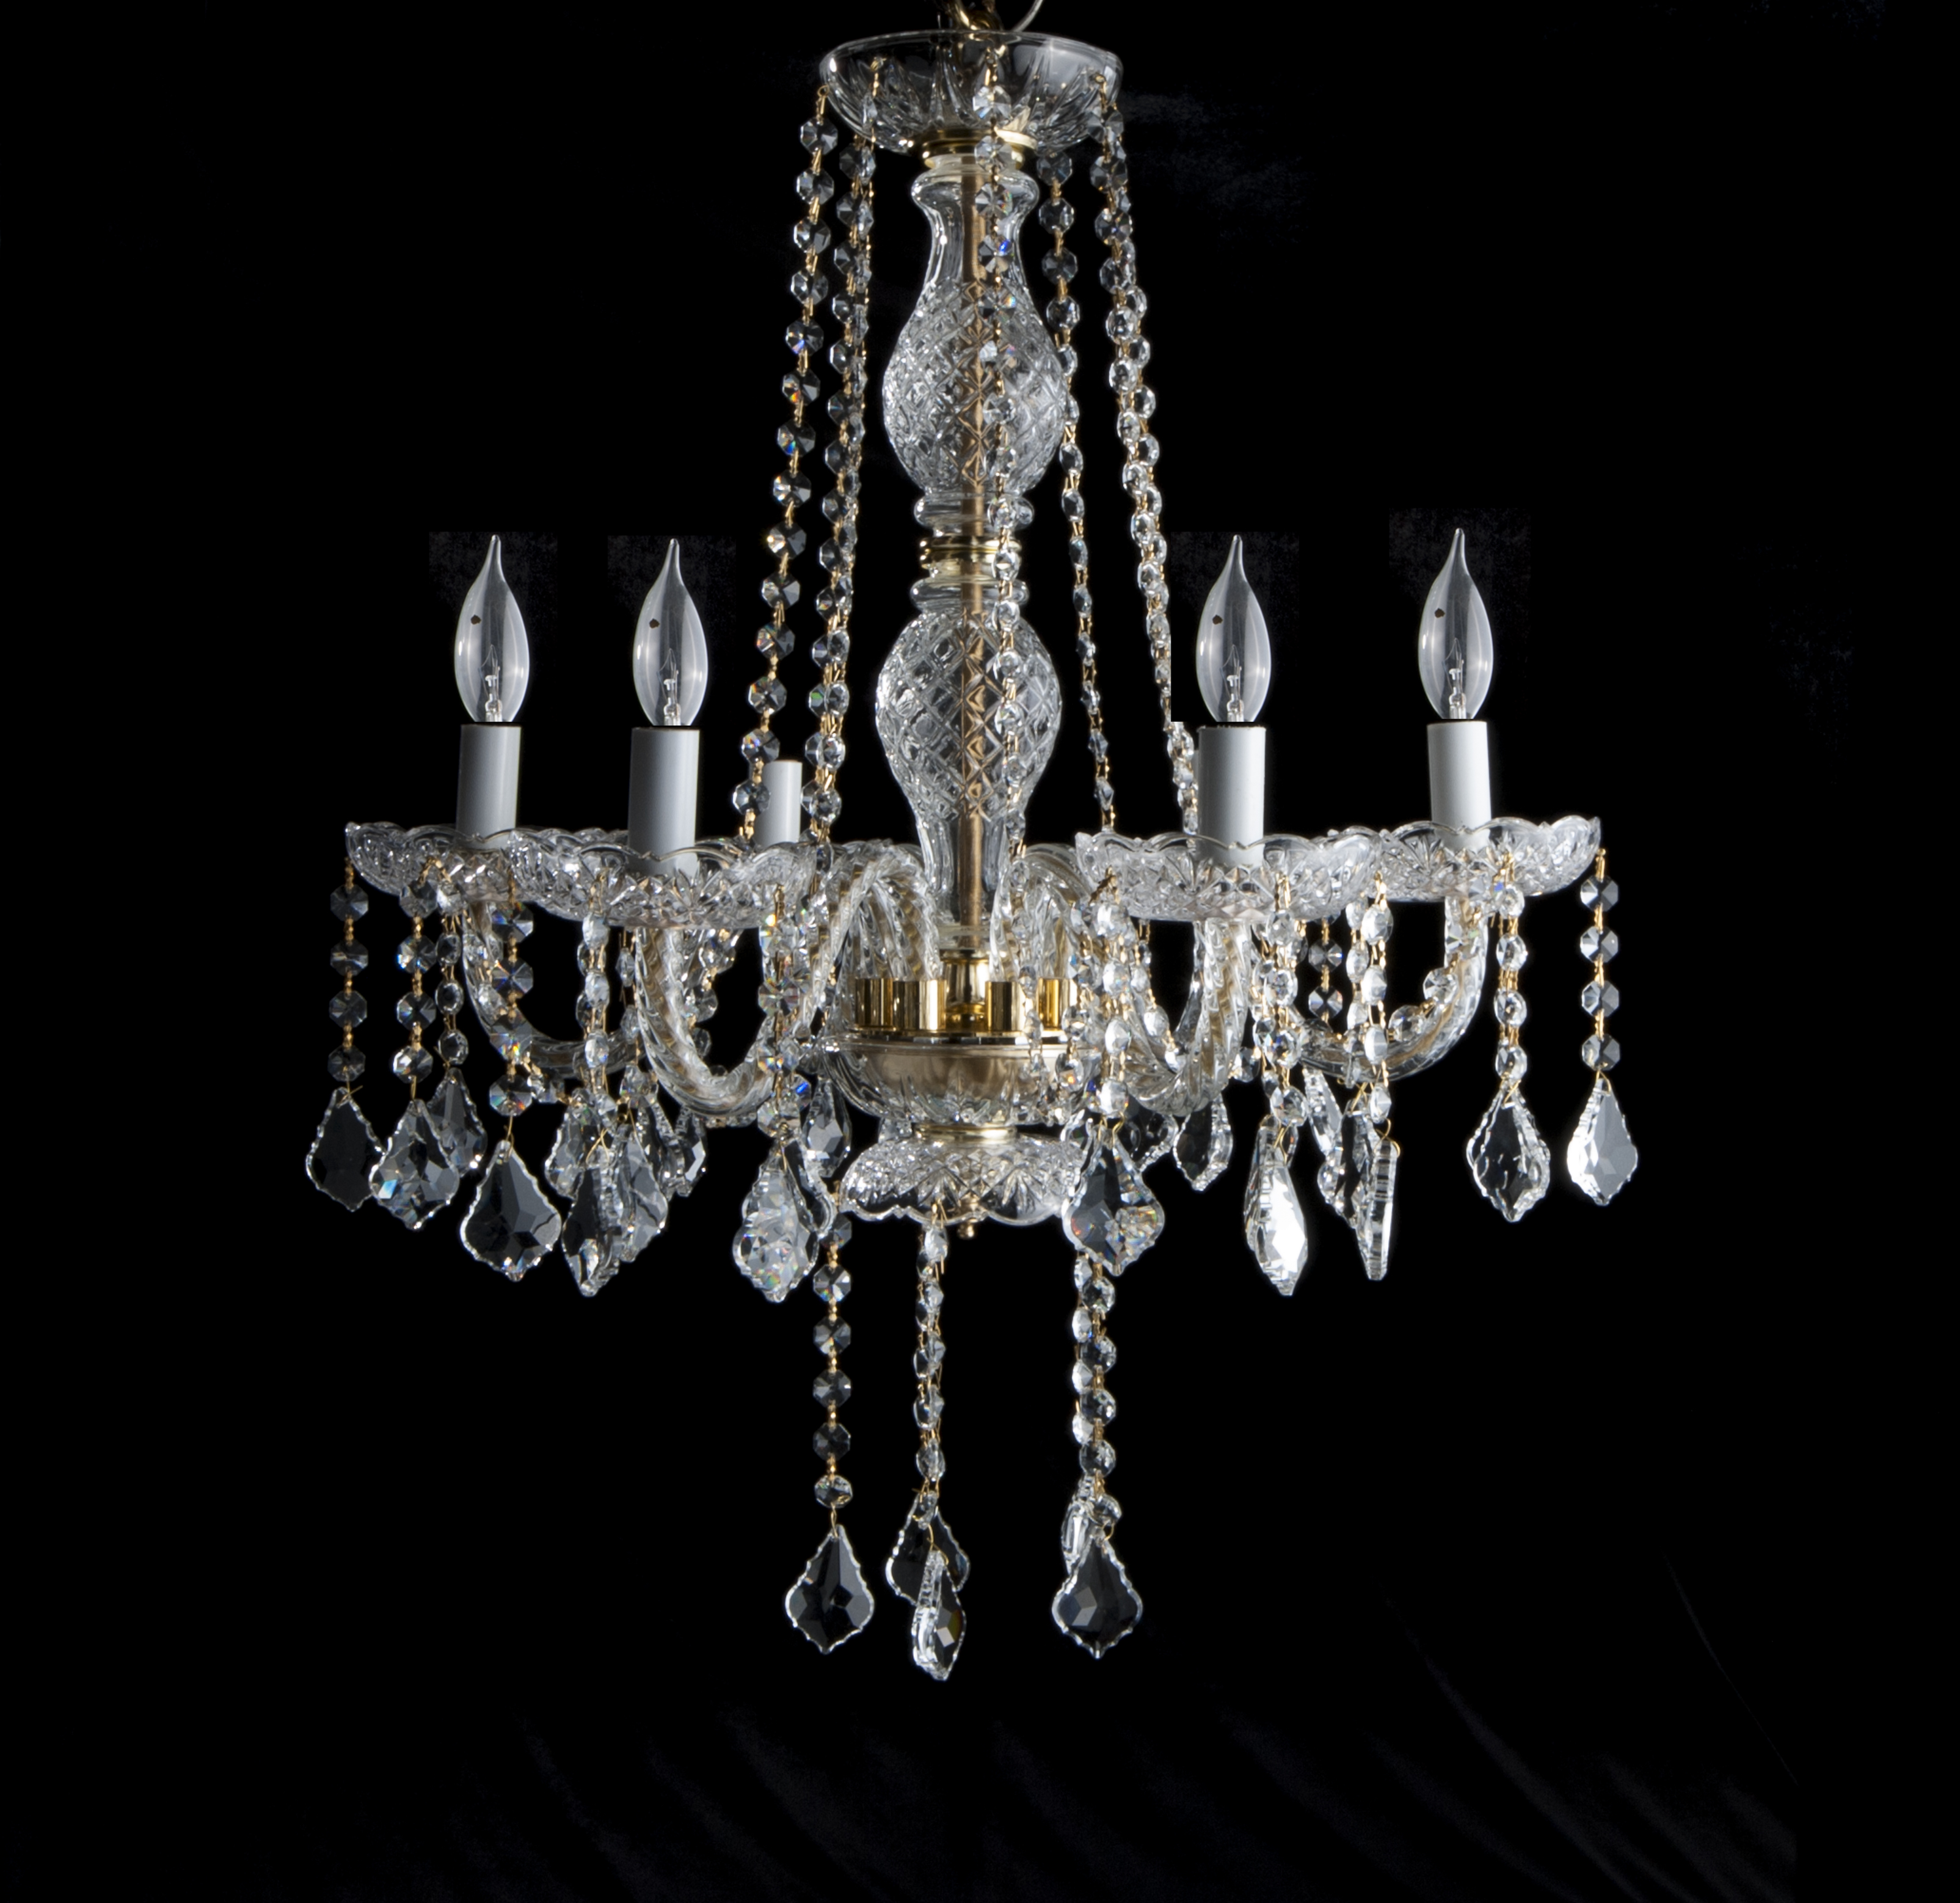 ITEM NO CHAN2 CRYSTAL CHANDELIER